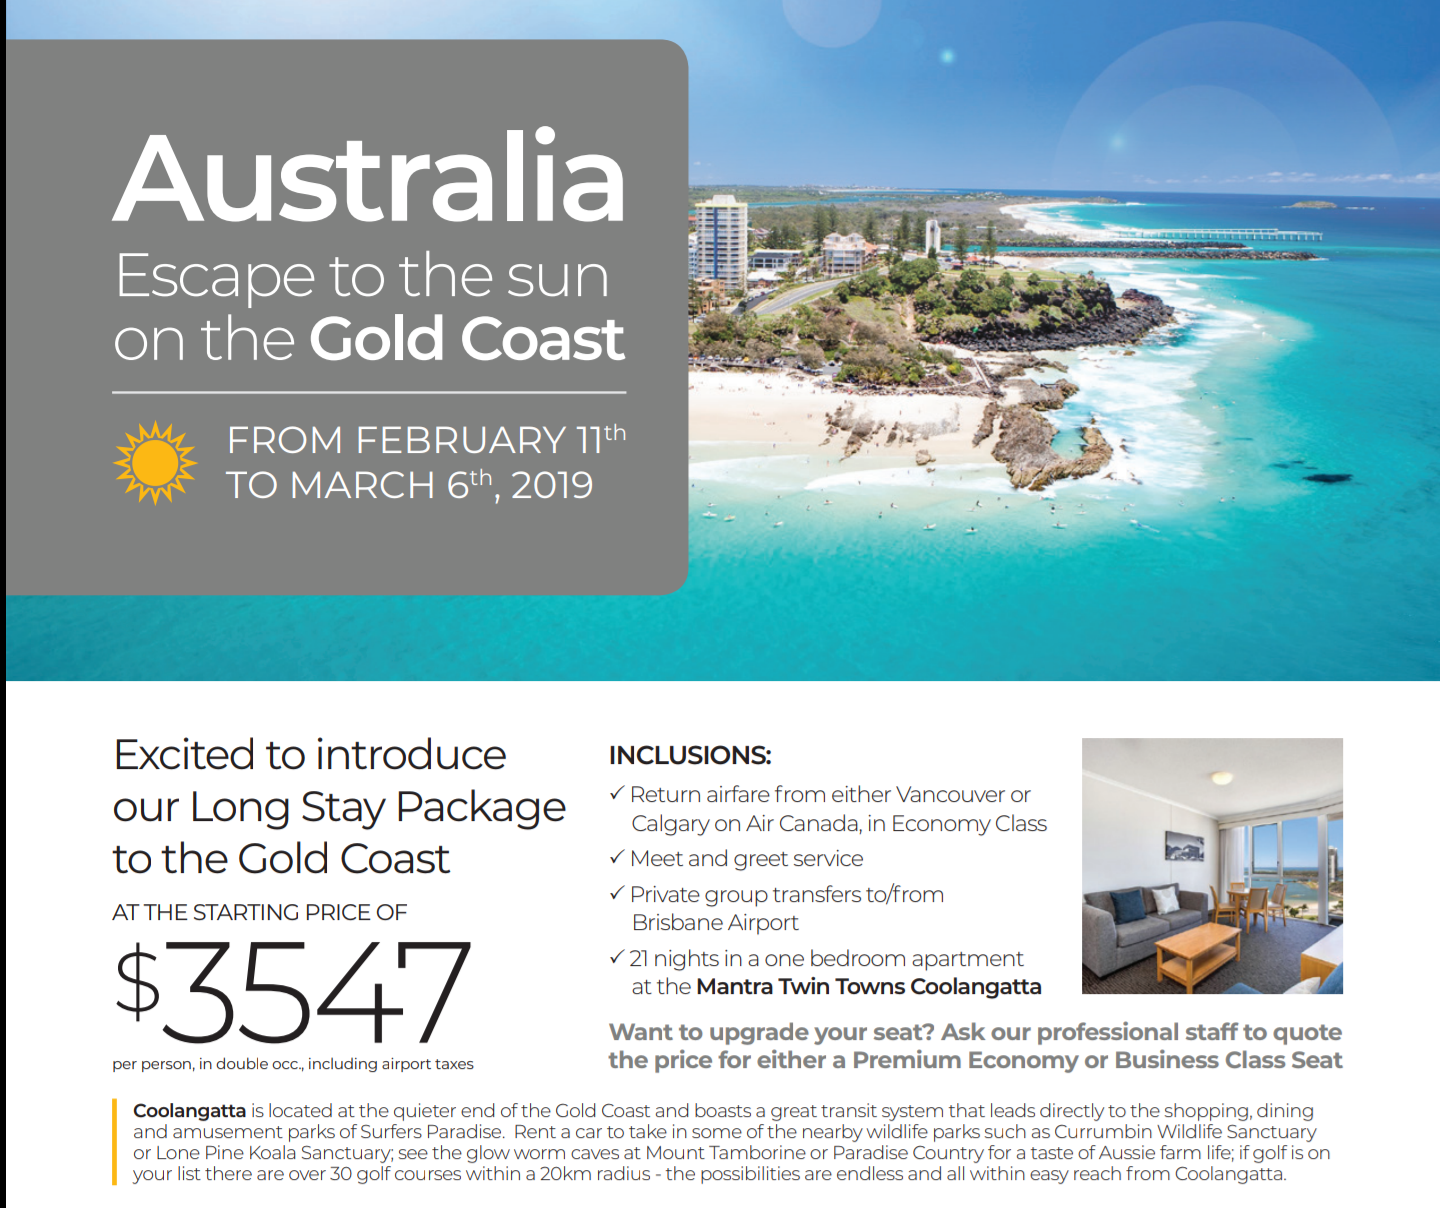 Spend 3 weeks on the GoldCoast this winter! Includes